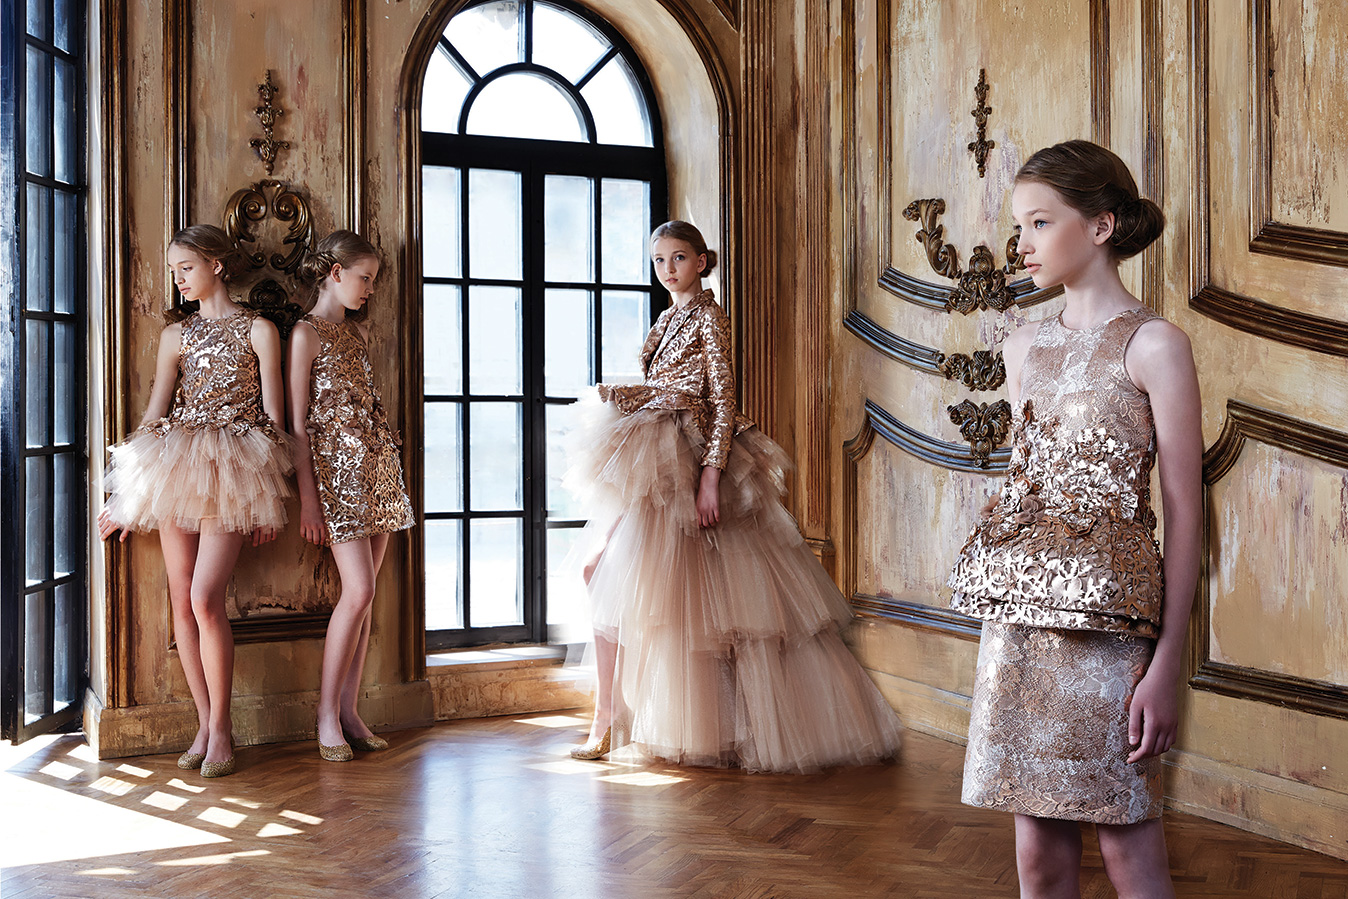 Mischka aoki the luxury couture house for children for Hot couture fashion